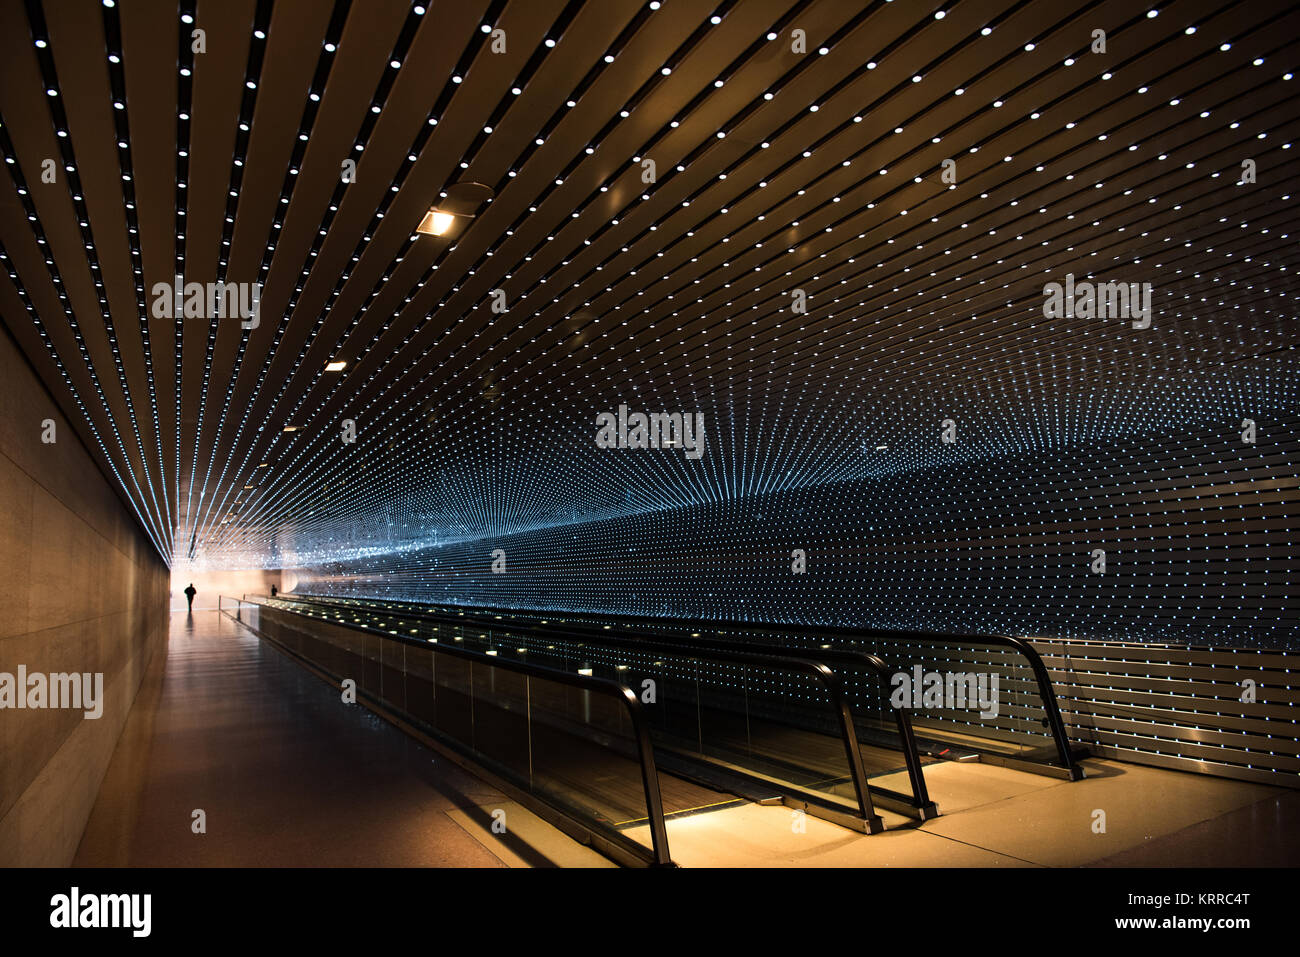 An LED light installation by American artist Leo Villareal titled Multiverse (2008) connecting the old and new buildings - Stock Image